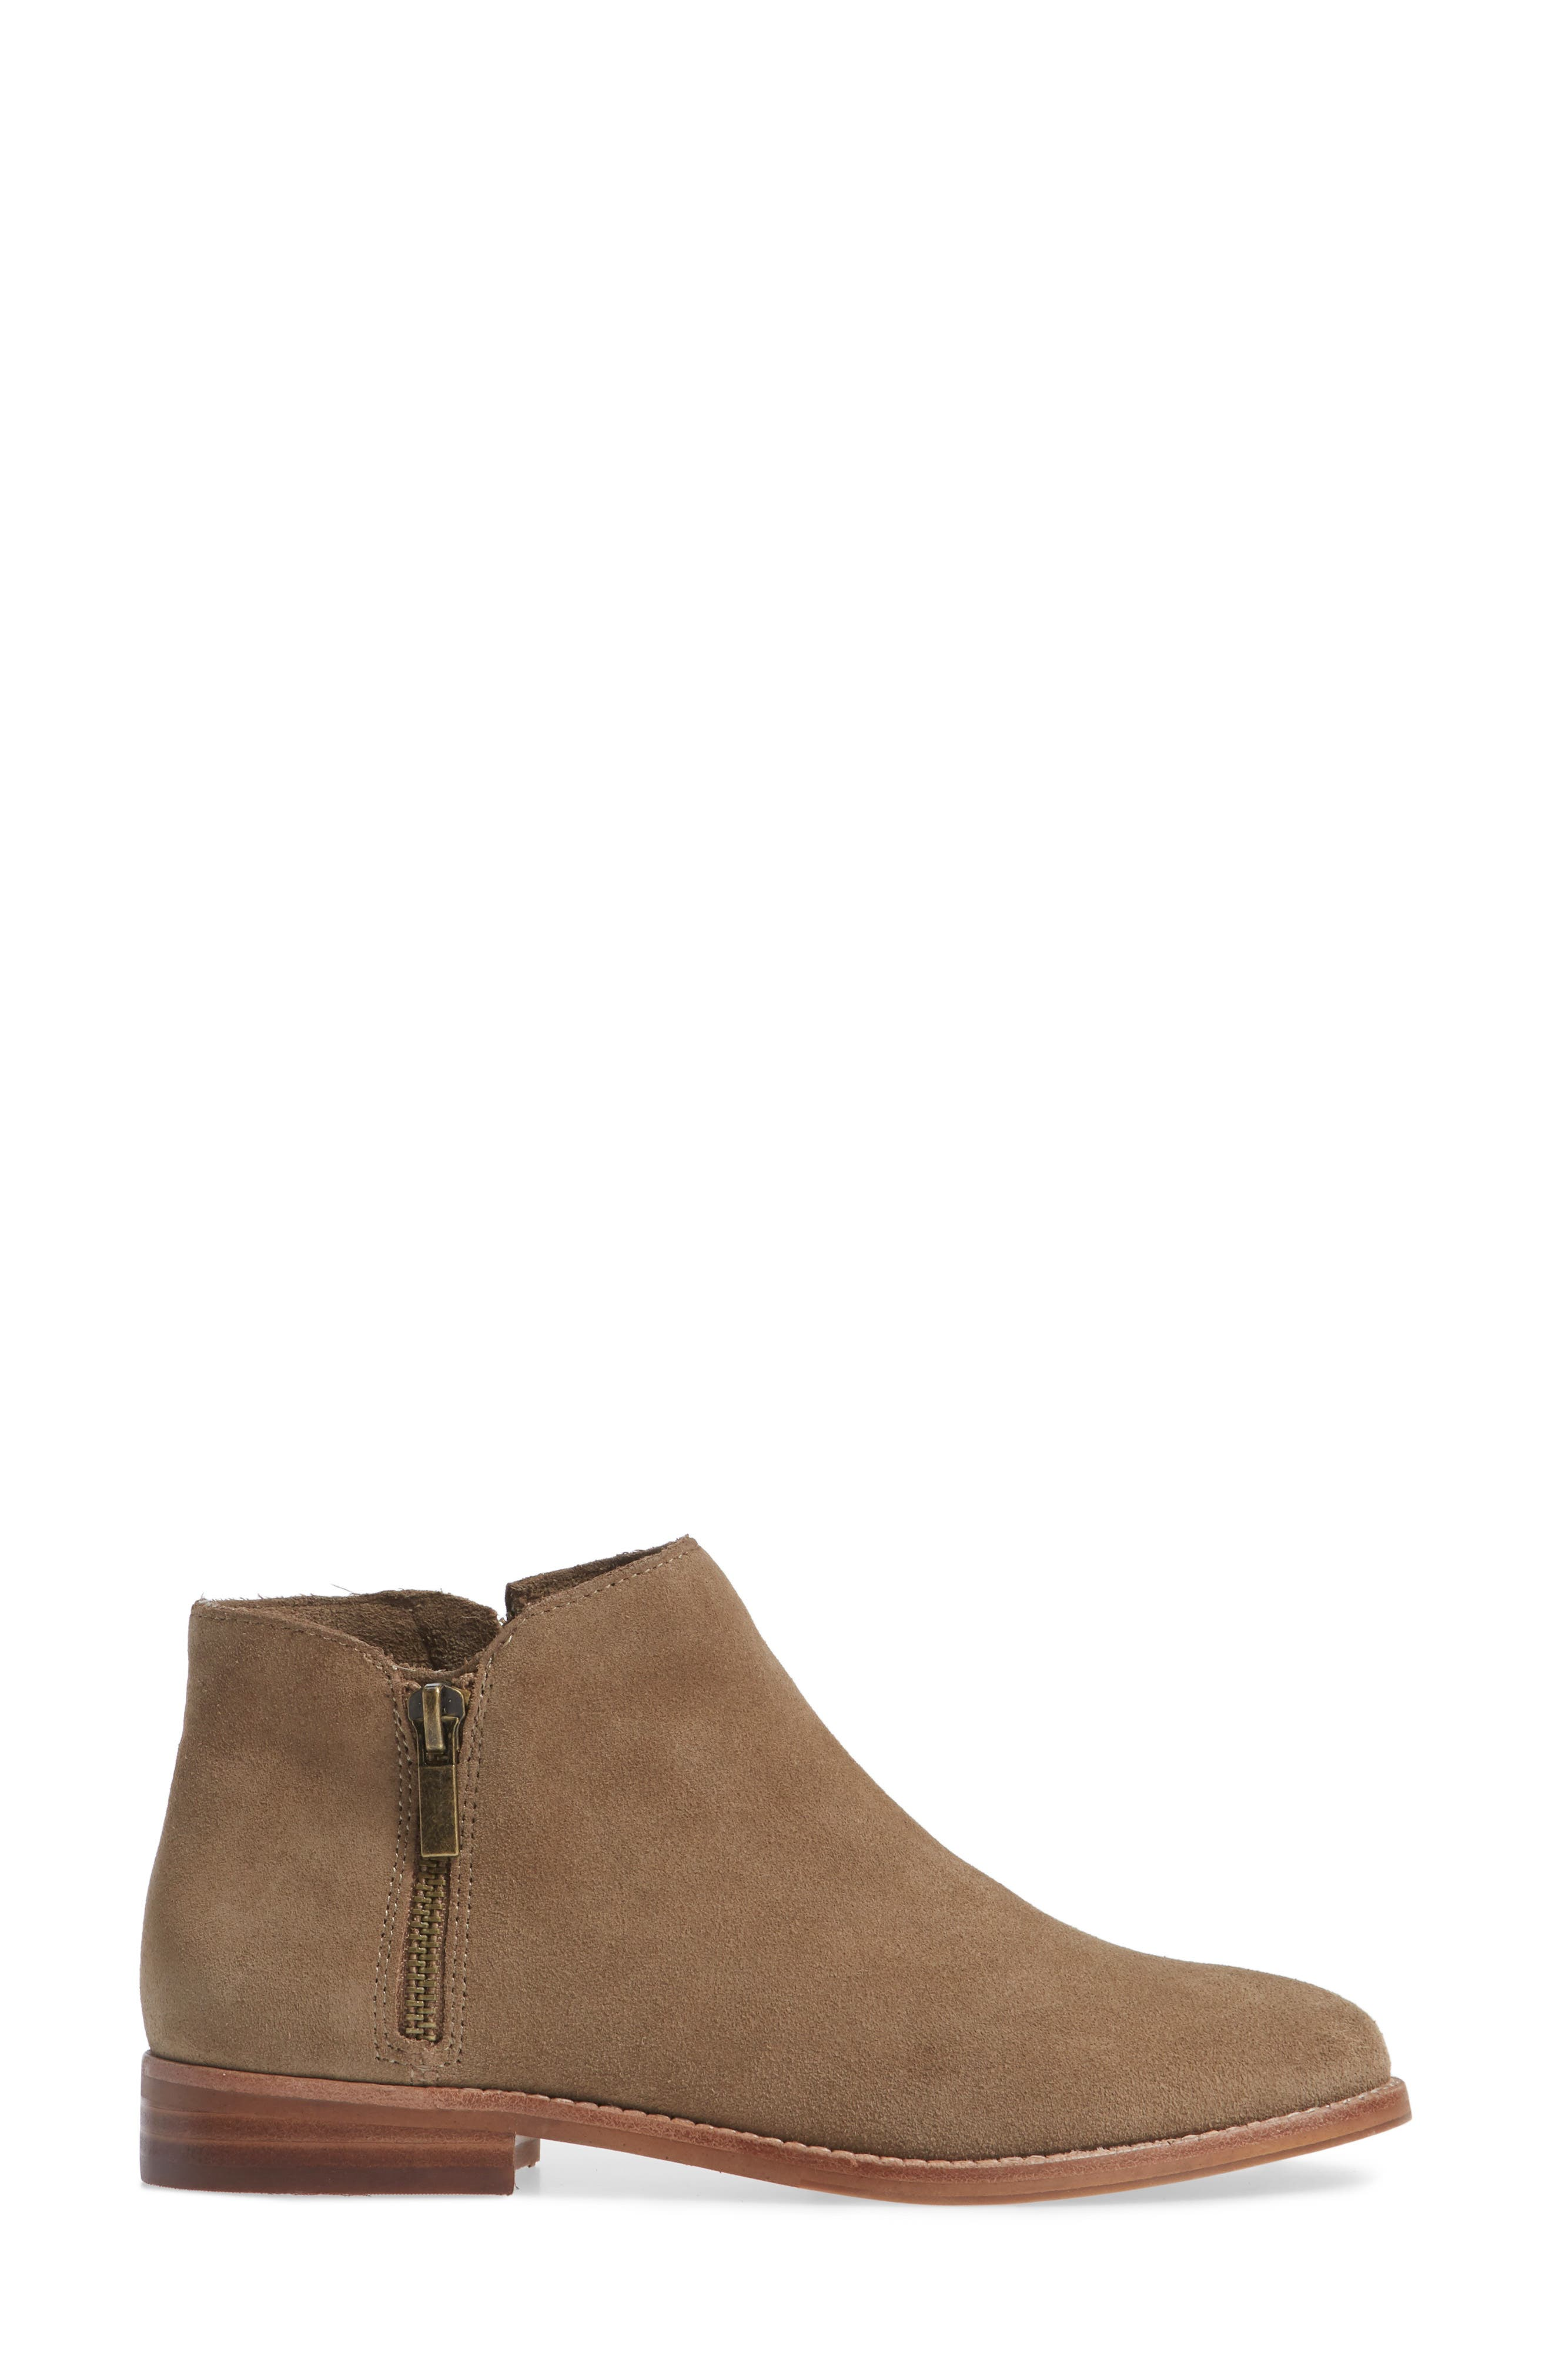 Bevlyn Bootie,                             Alternate thumbnail 3, color,                             ROCK SUEDE